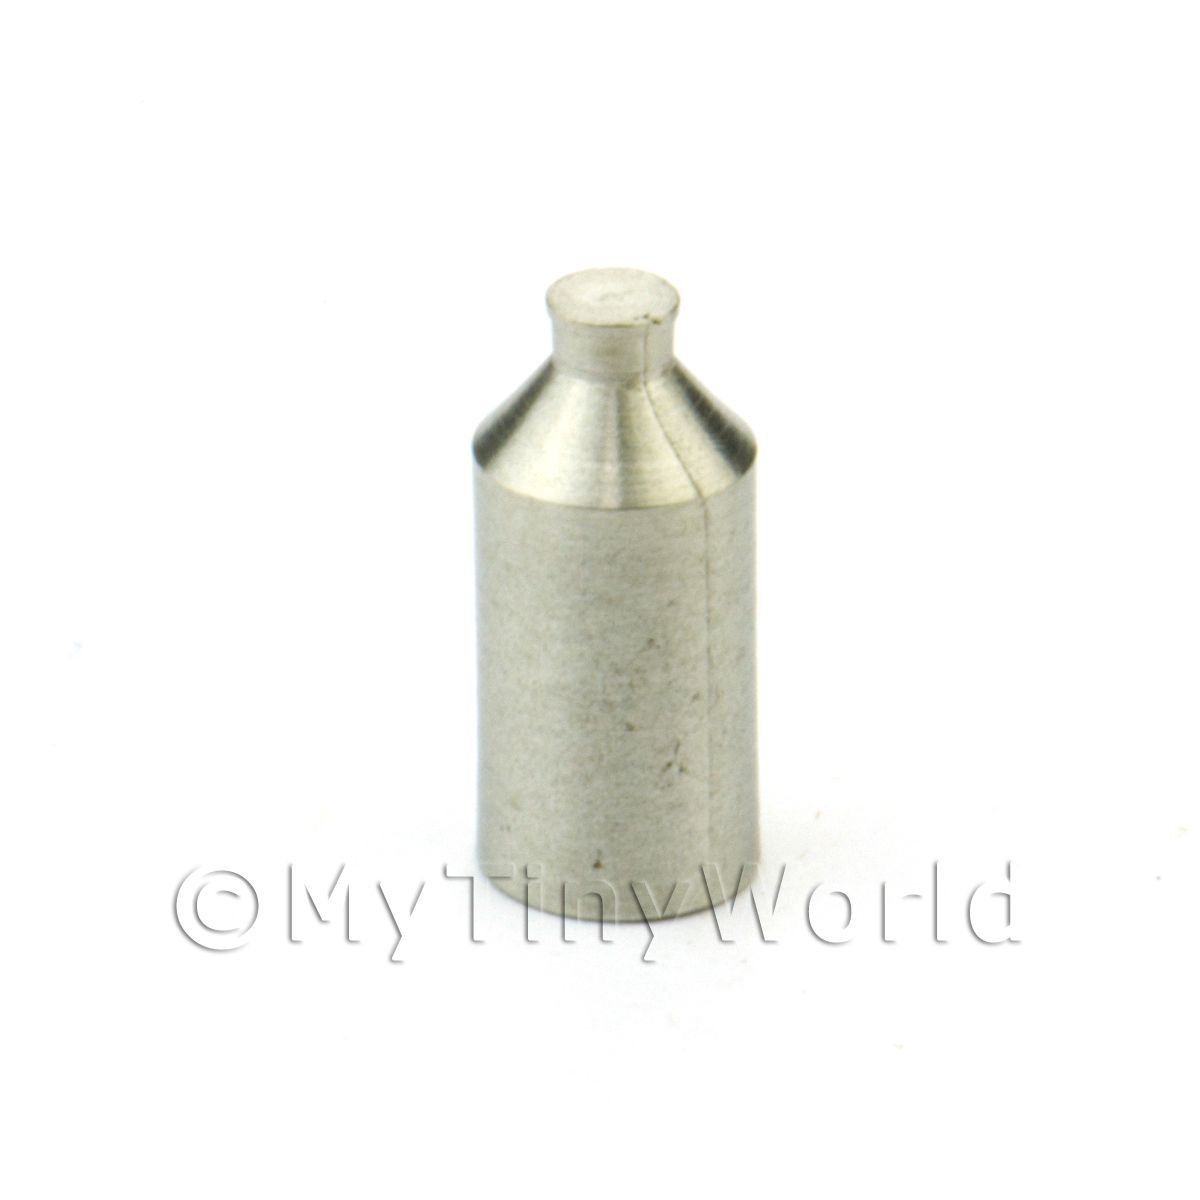 Dolls House Miniature White Metal Old Style Beer Bottle